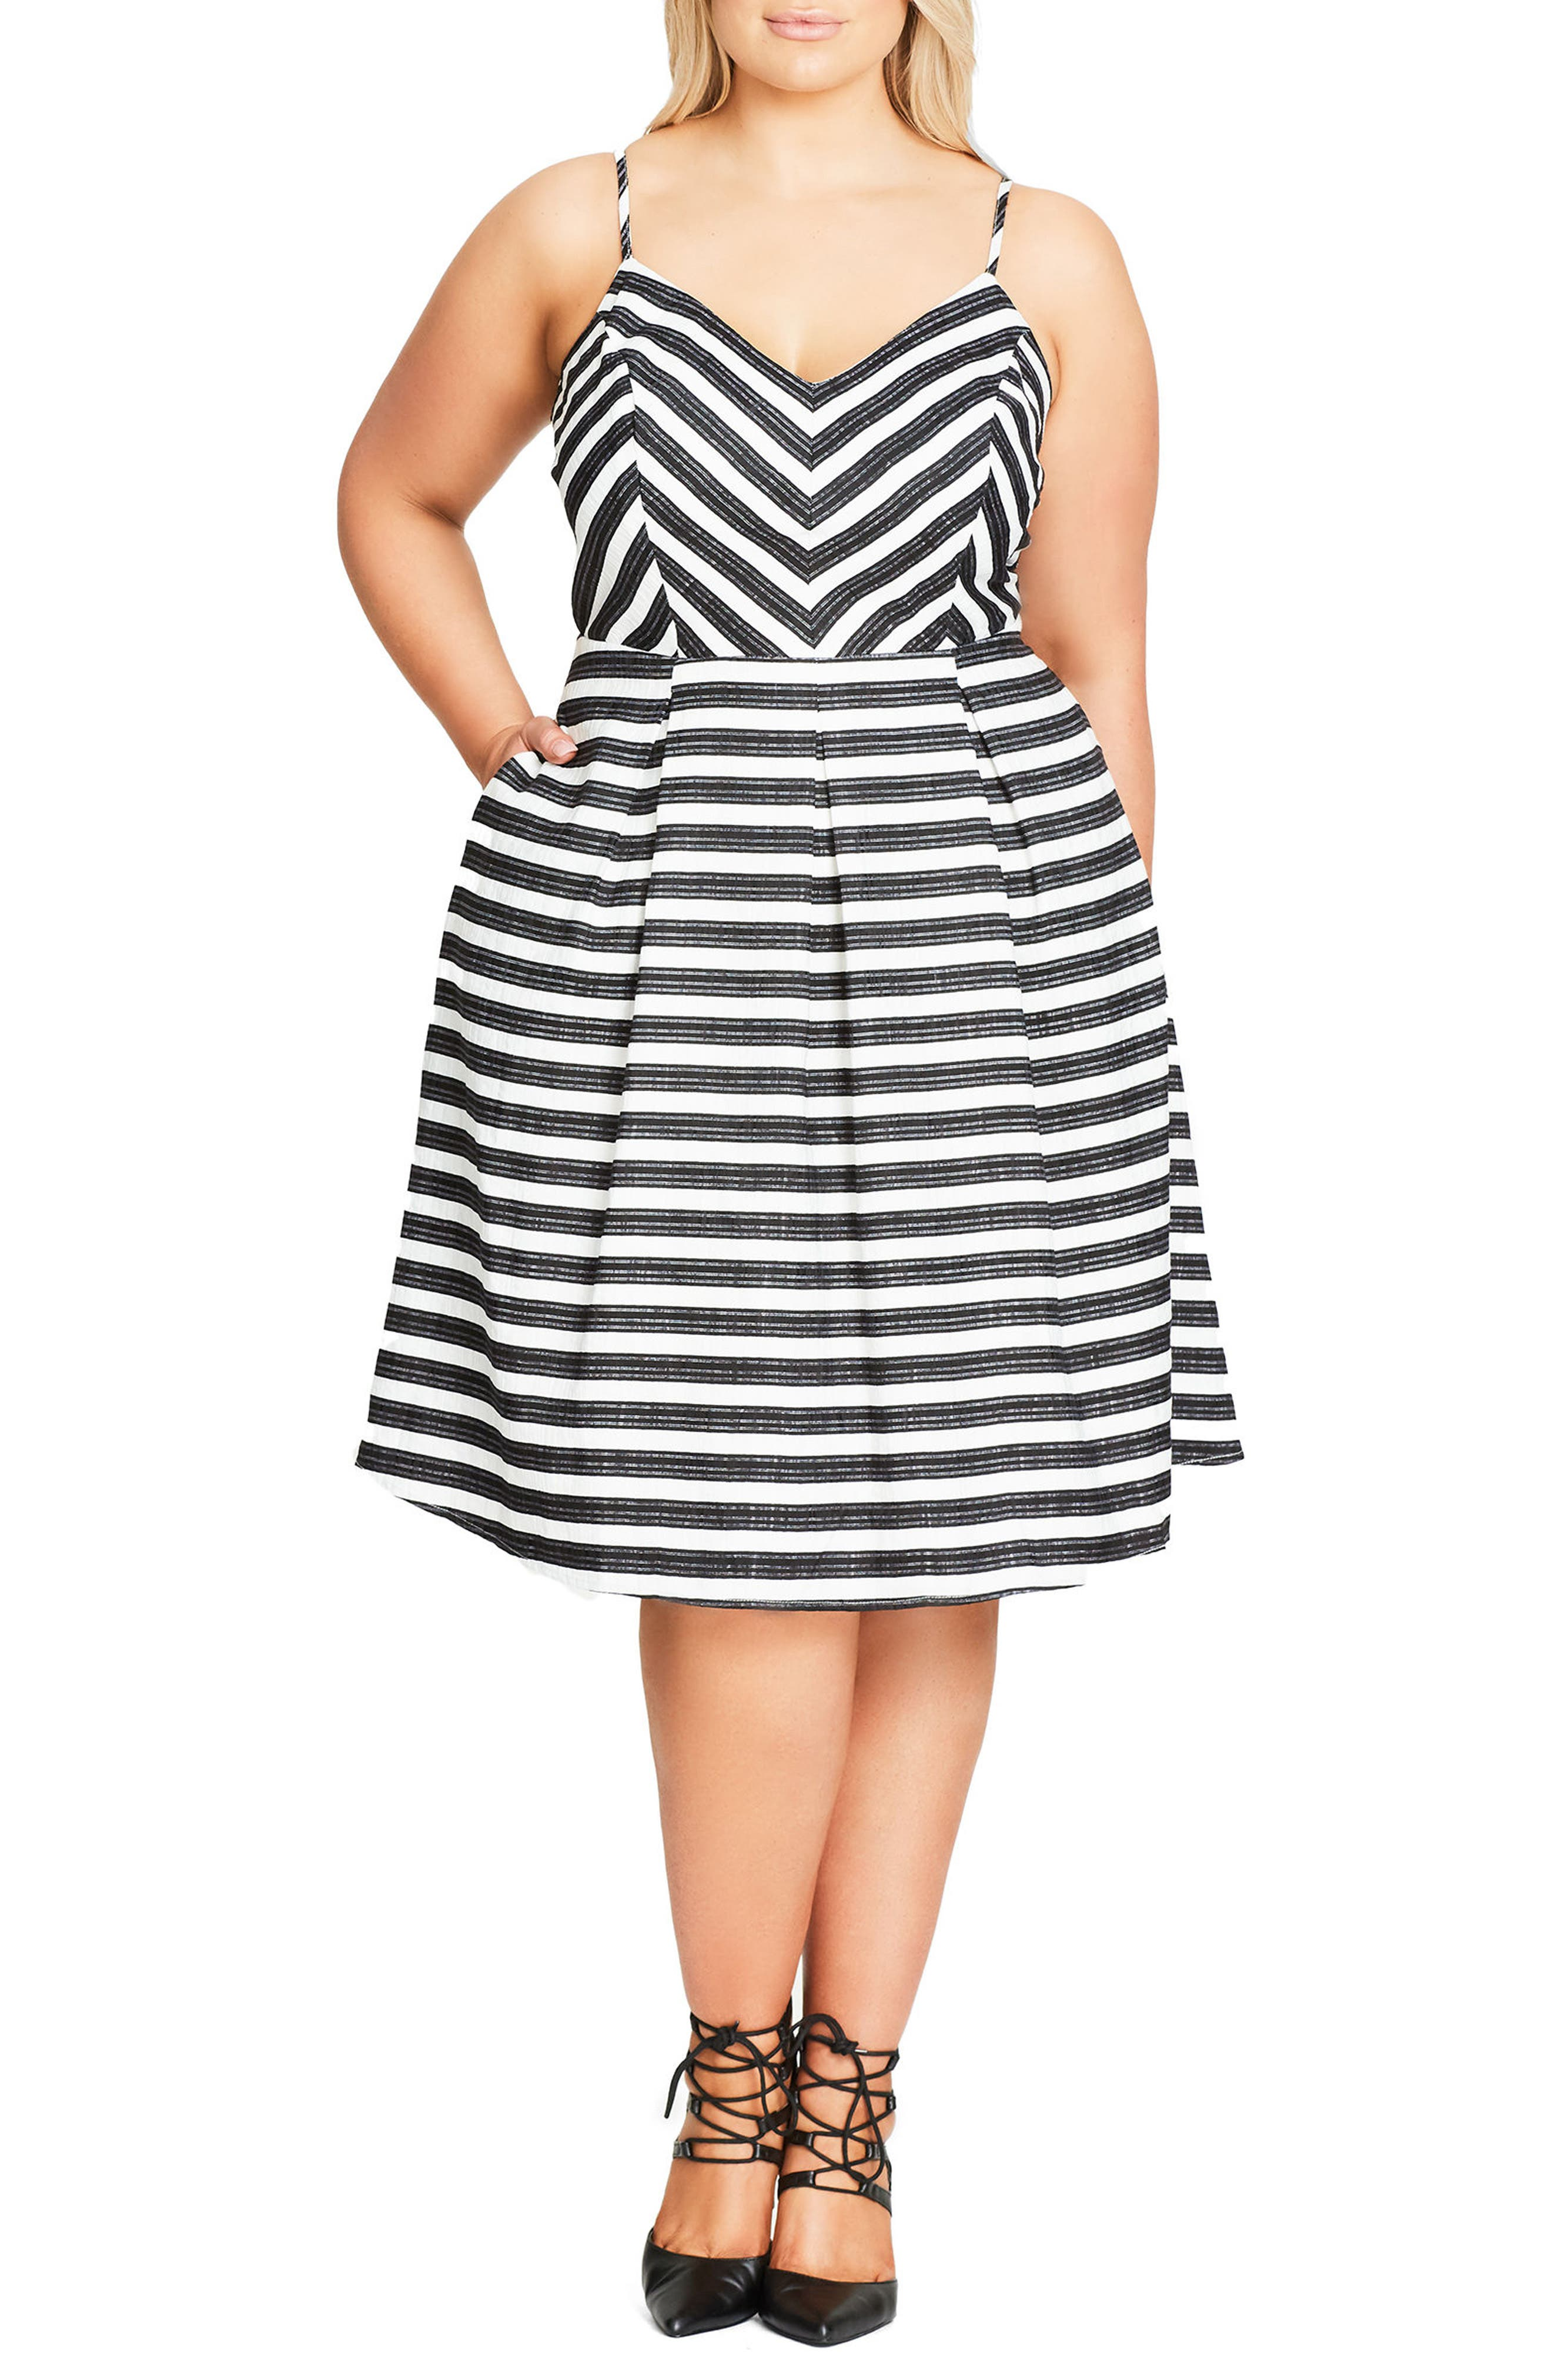 Alternate Image 1 Selected - City Chic Marilyn Stripe Fit & Flare Sundress (Plus Size)